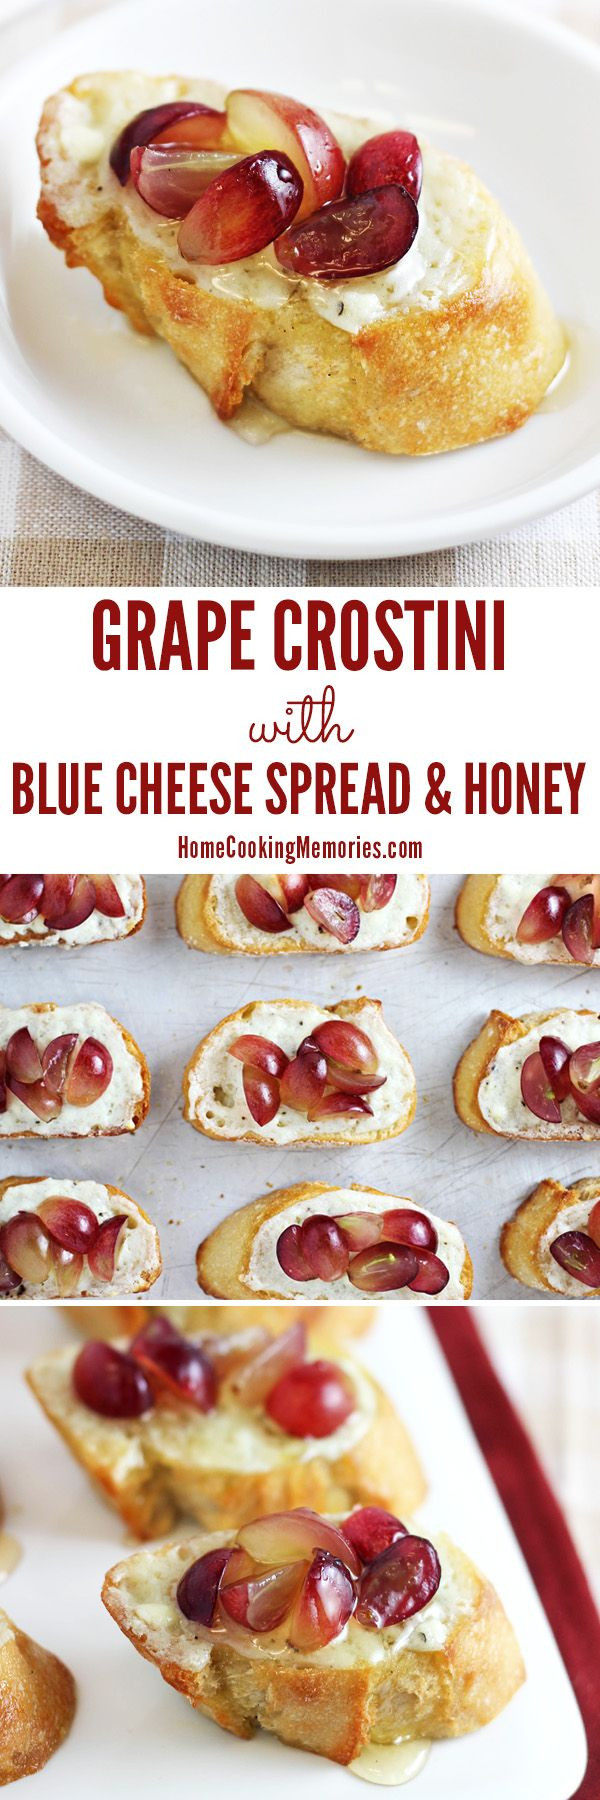 Christmas Party Appetizers Recipes  17 Best ideas about Christmas Party Appetizers on